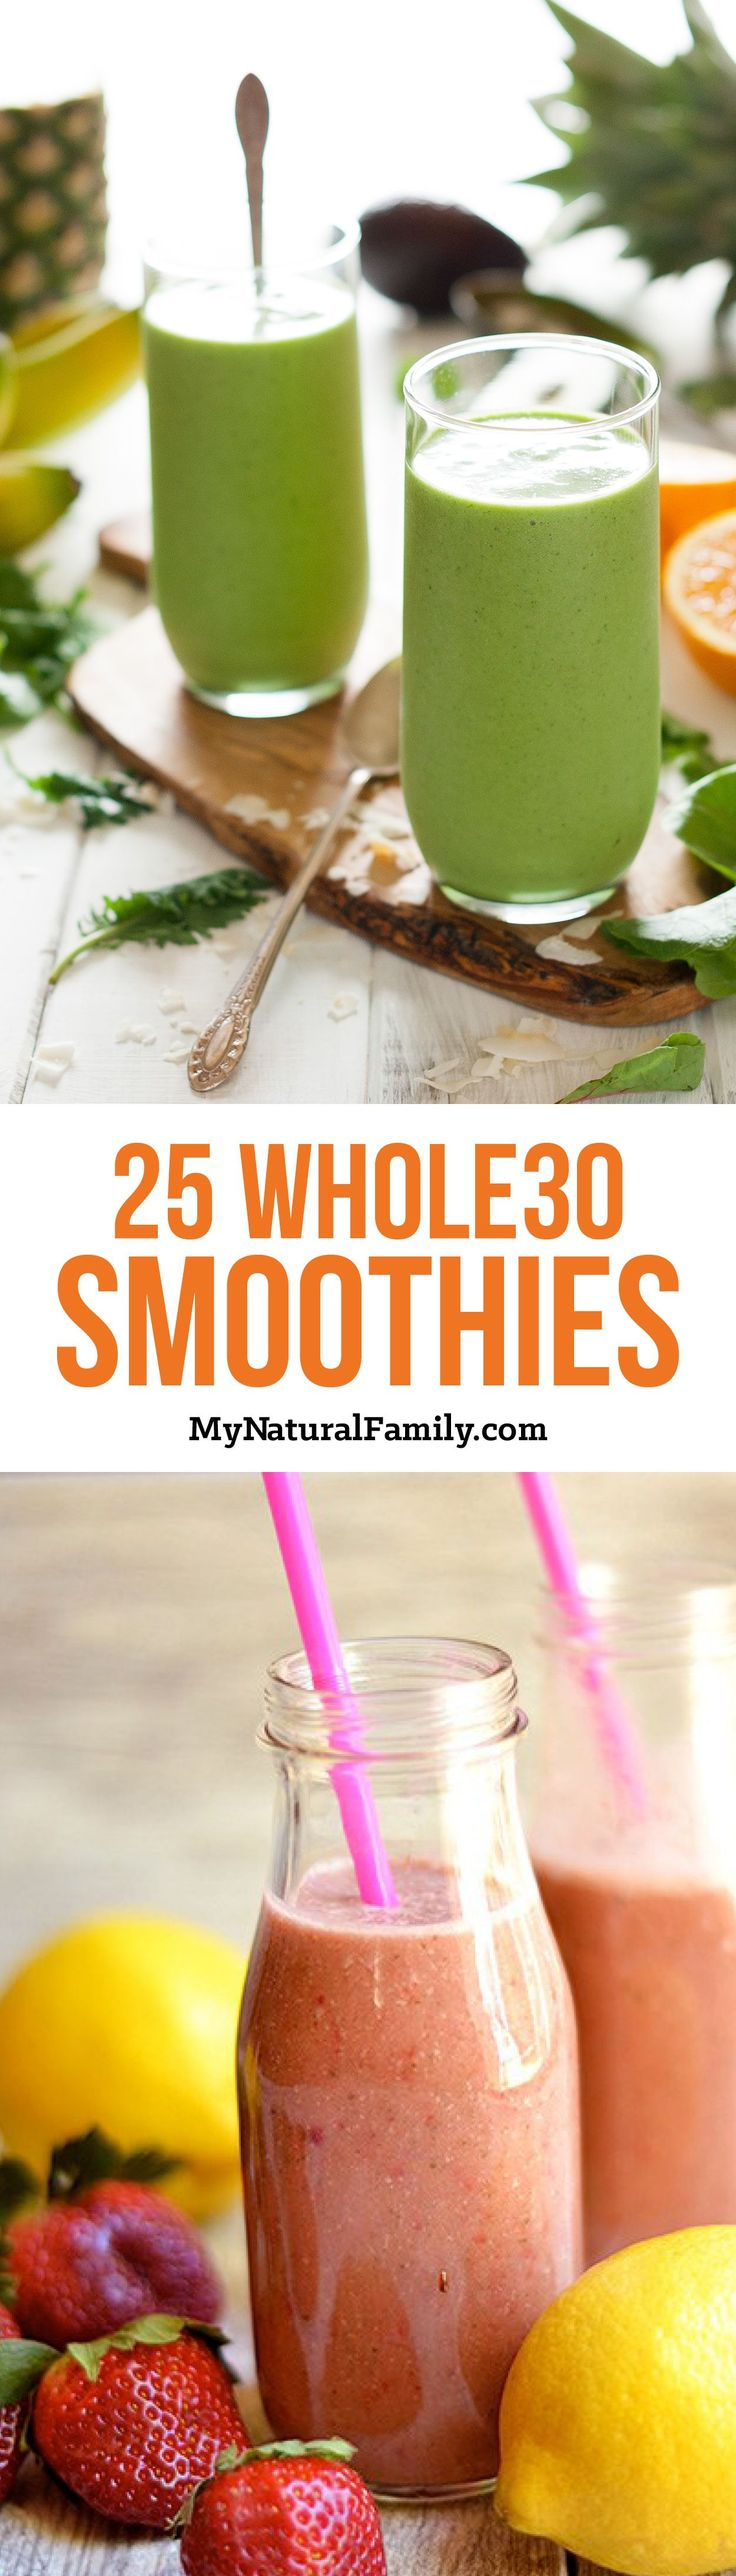 25 Paleo Breakfast Smoothie Recipes Part 2 with No Added Sweeteners                                                                                                                                                                                 More